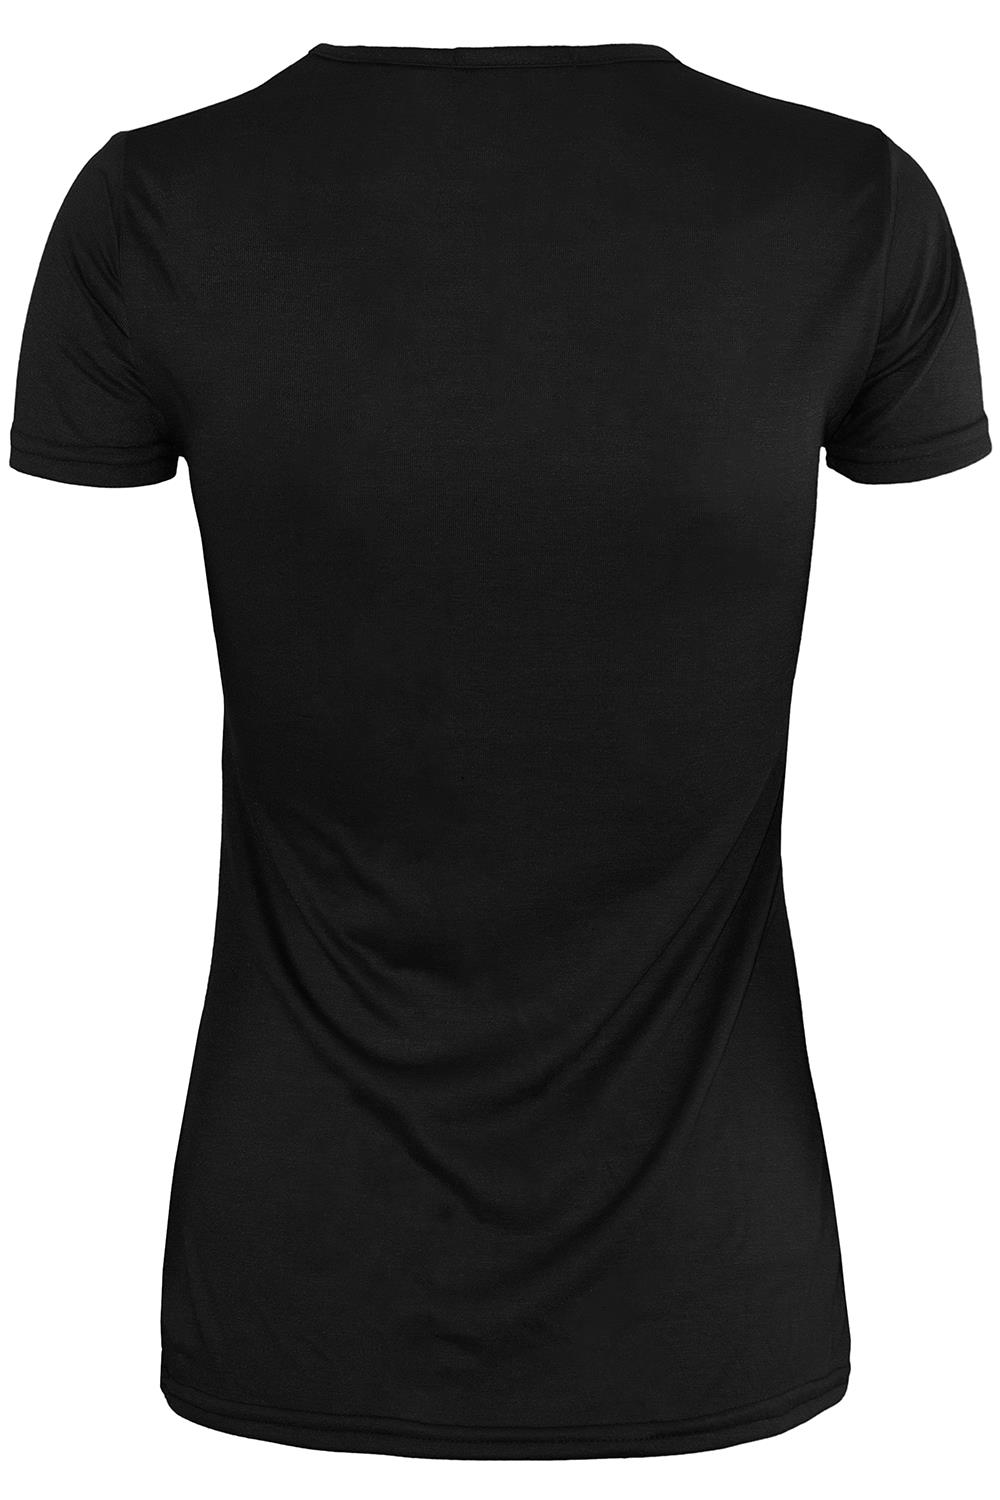 Womens Ladies Plain V Neck Casual Basic Oversize Sporty Stretchy T-Shirt Tee Top